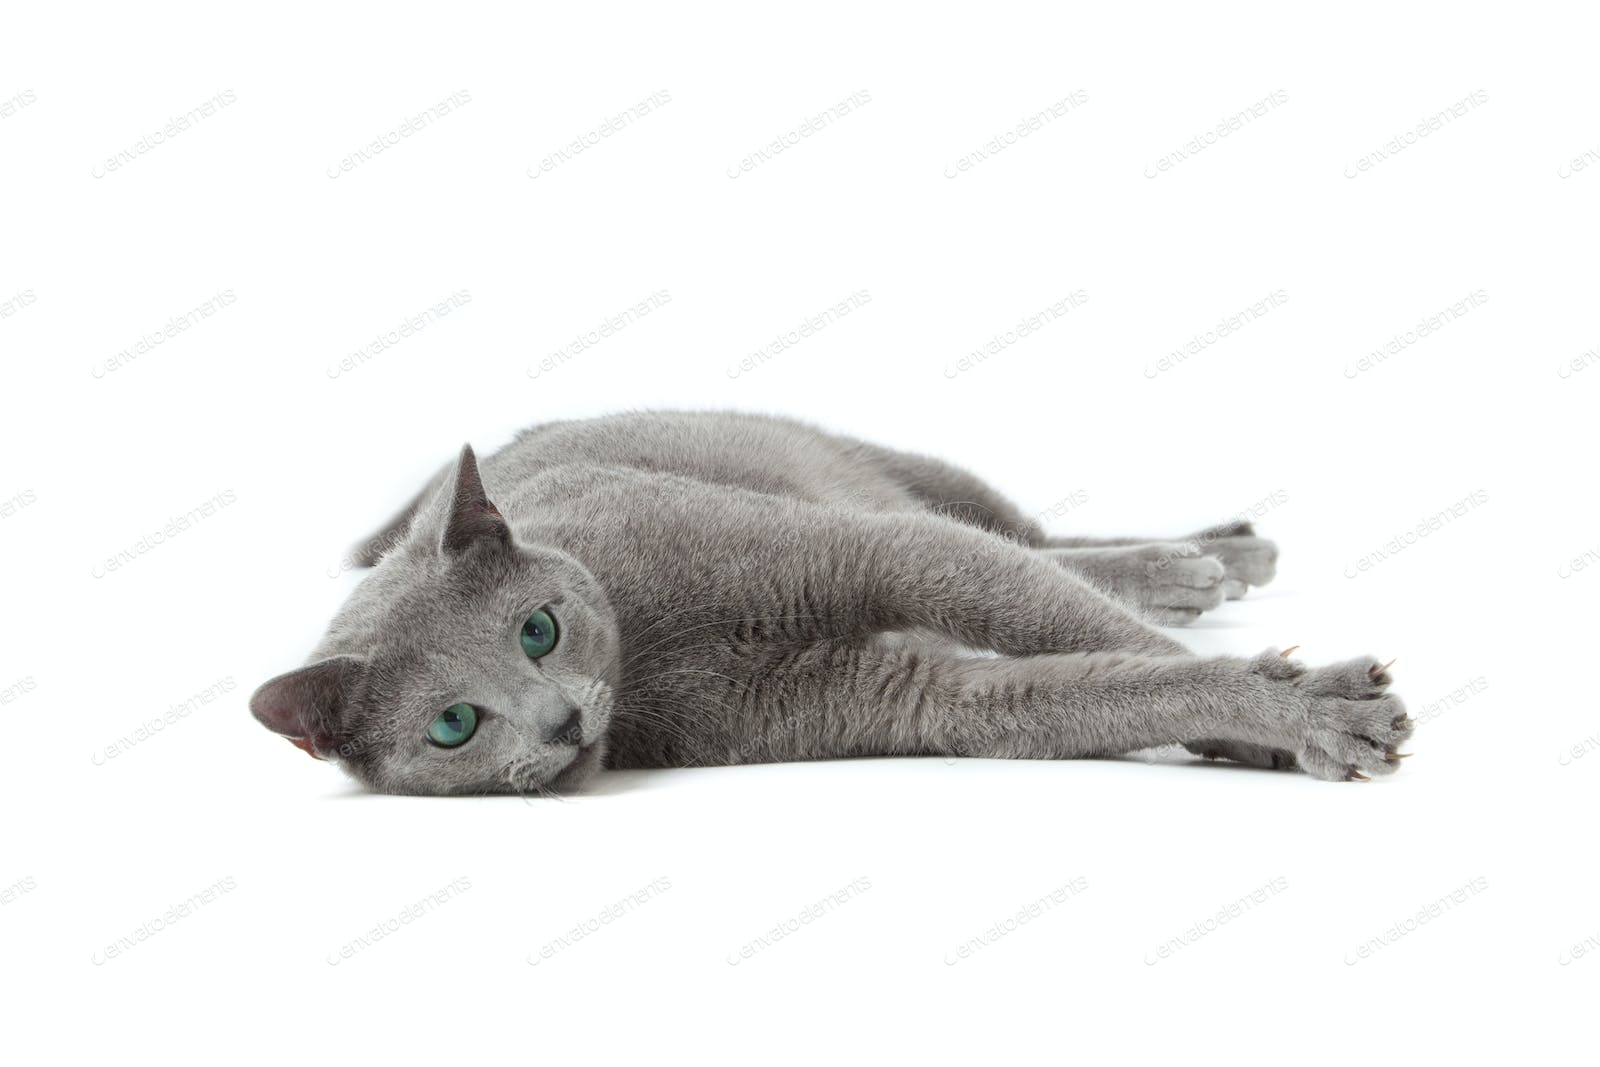 Russian Blue Cat On White Photo By Ewastudio On Envato Elements